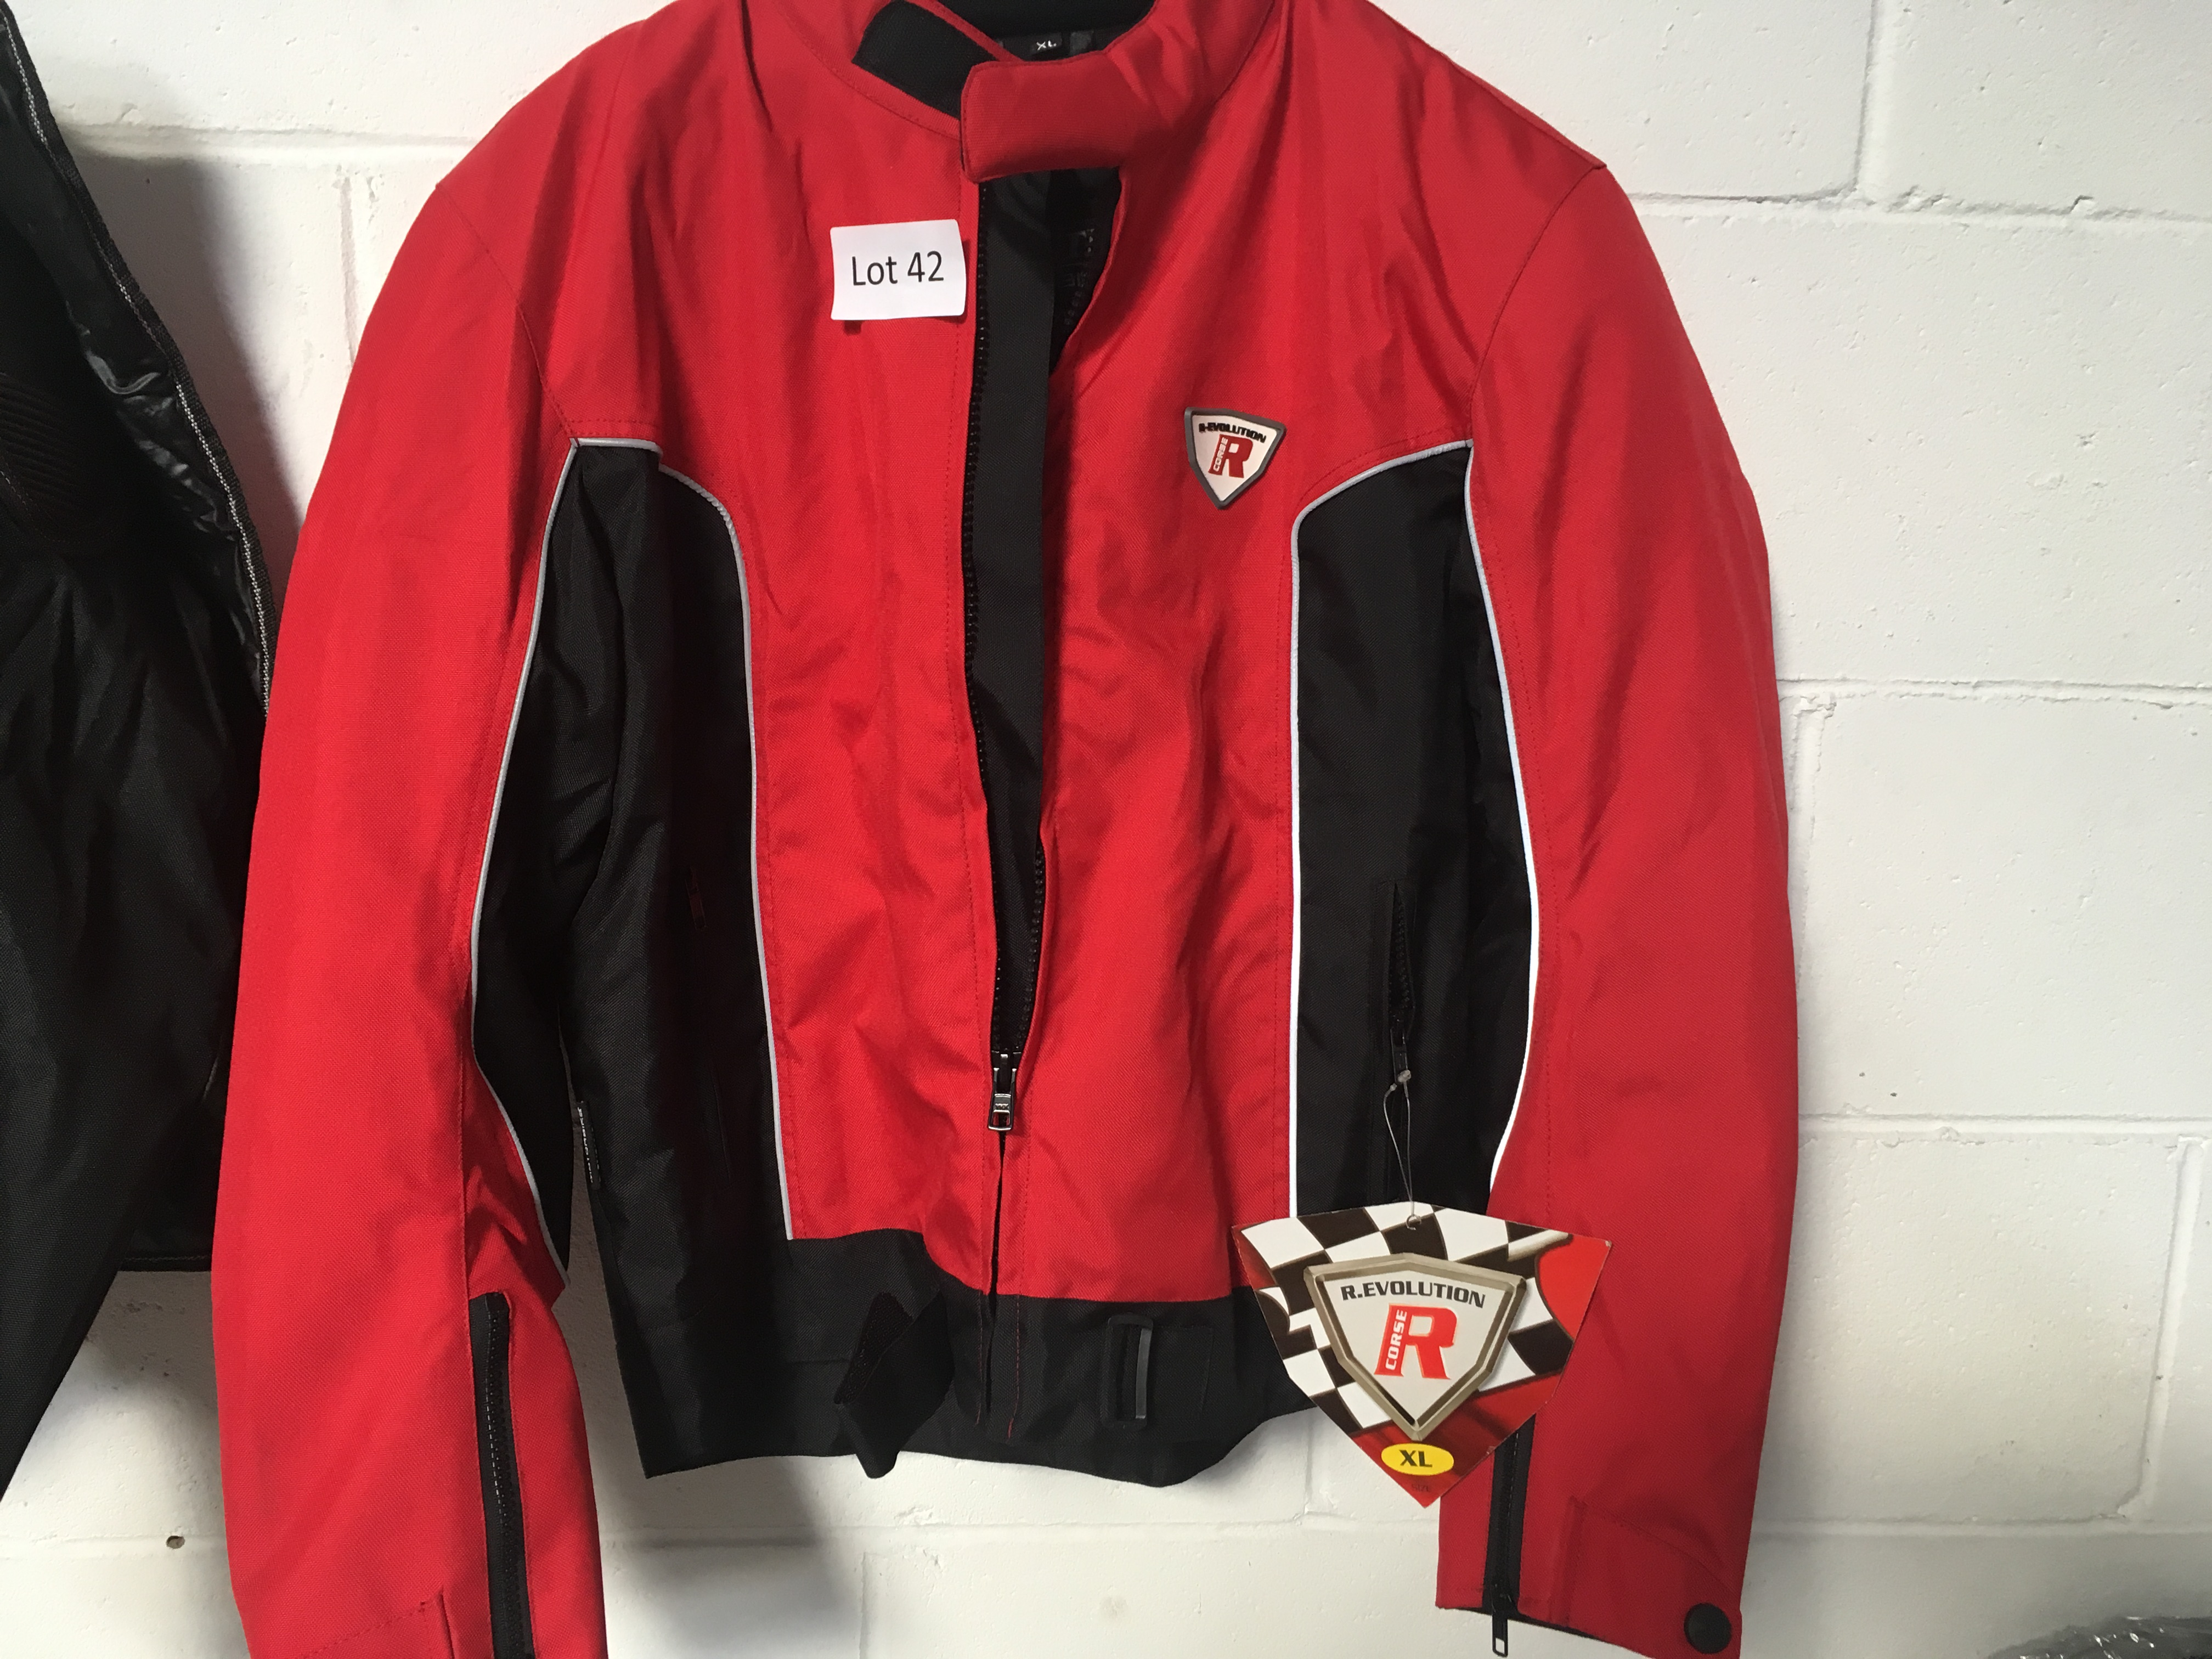 Lot 42 - R.Evolution corseR ladies motorcycle / quad bike jacket. Red in coliur. Size XL. New.